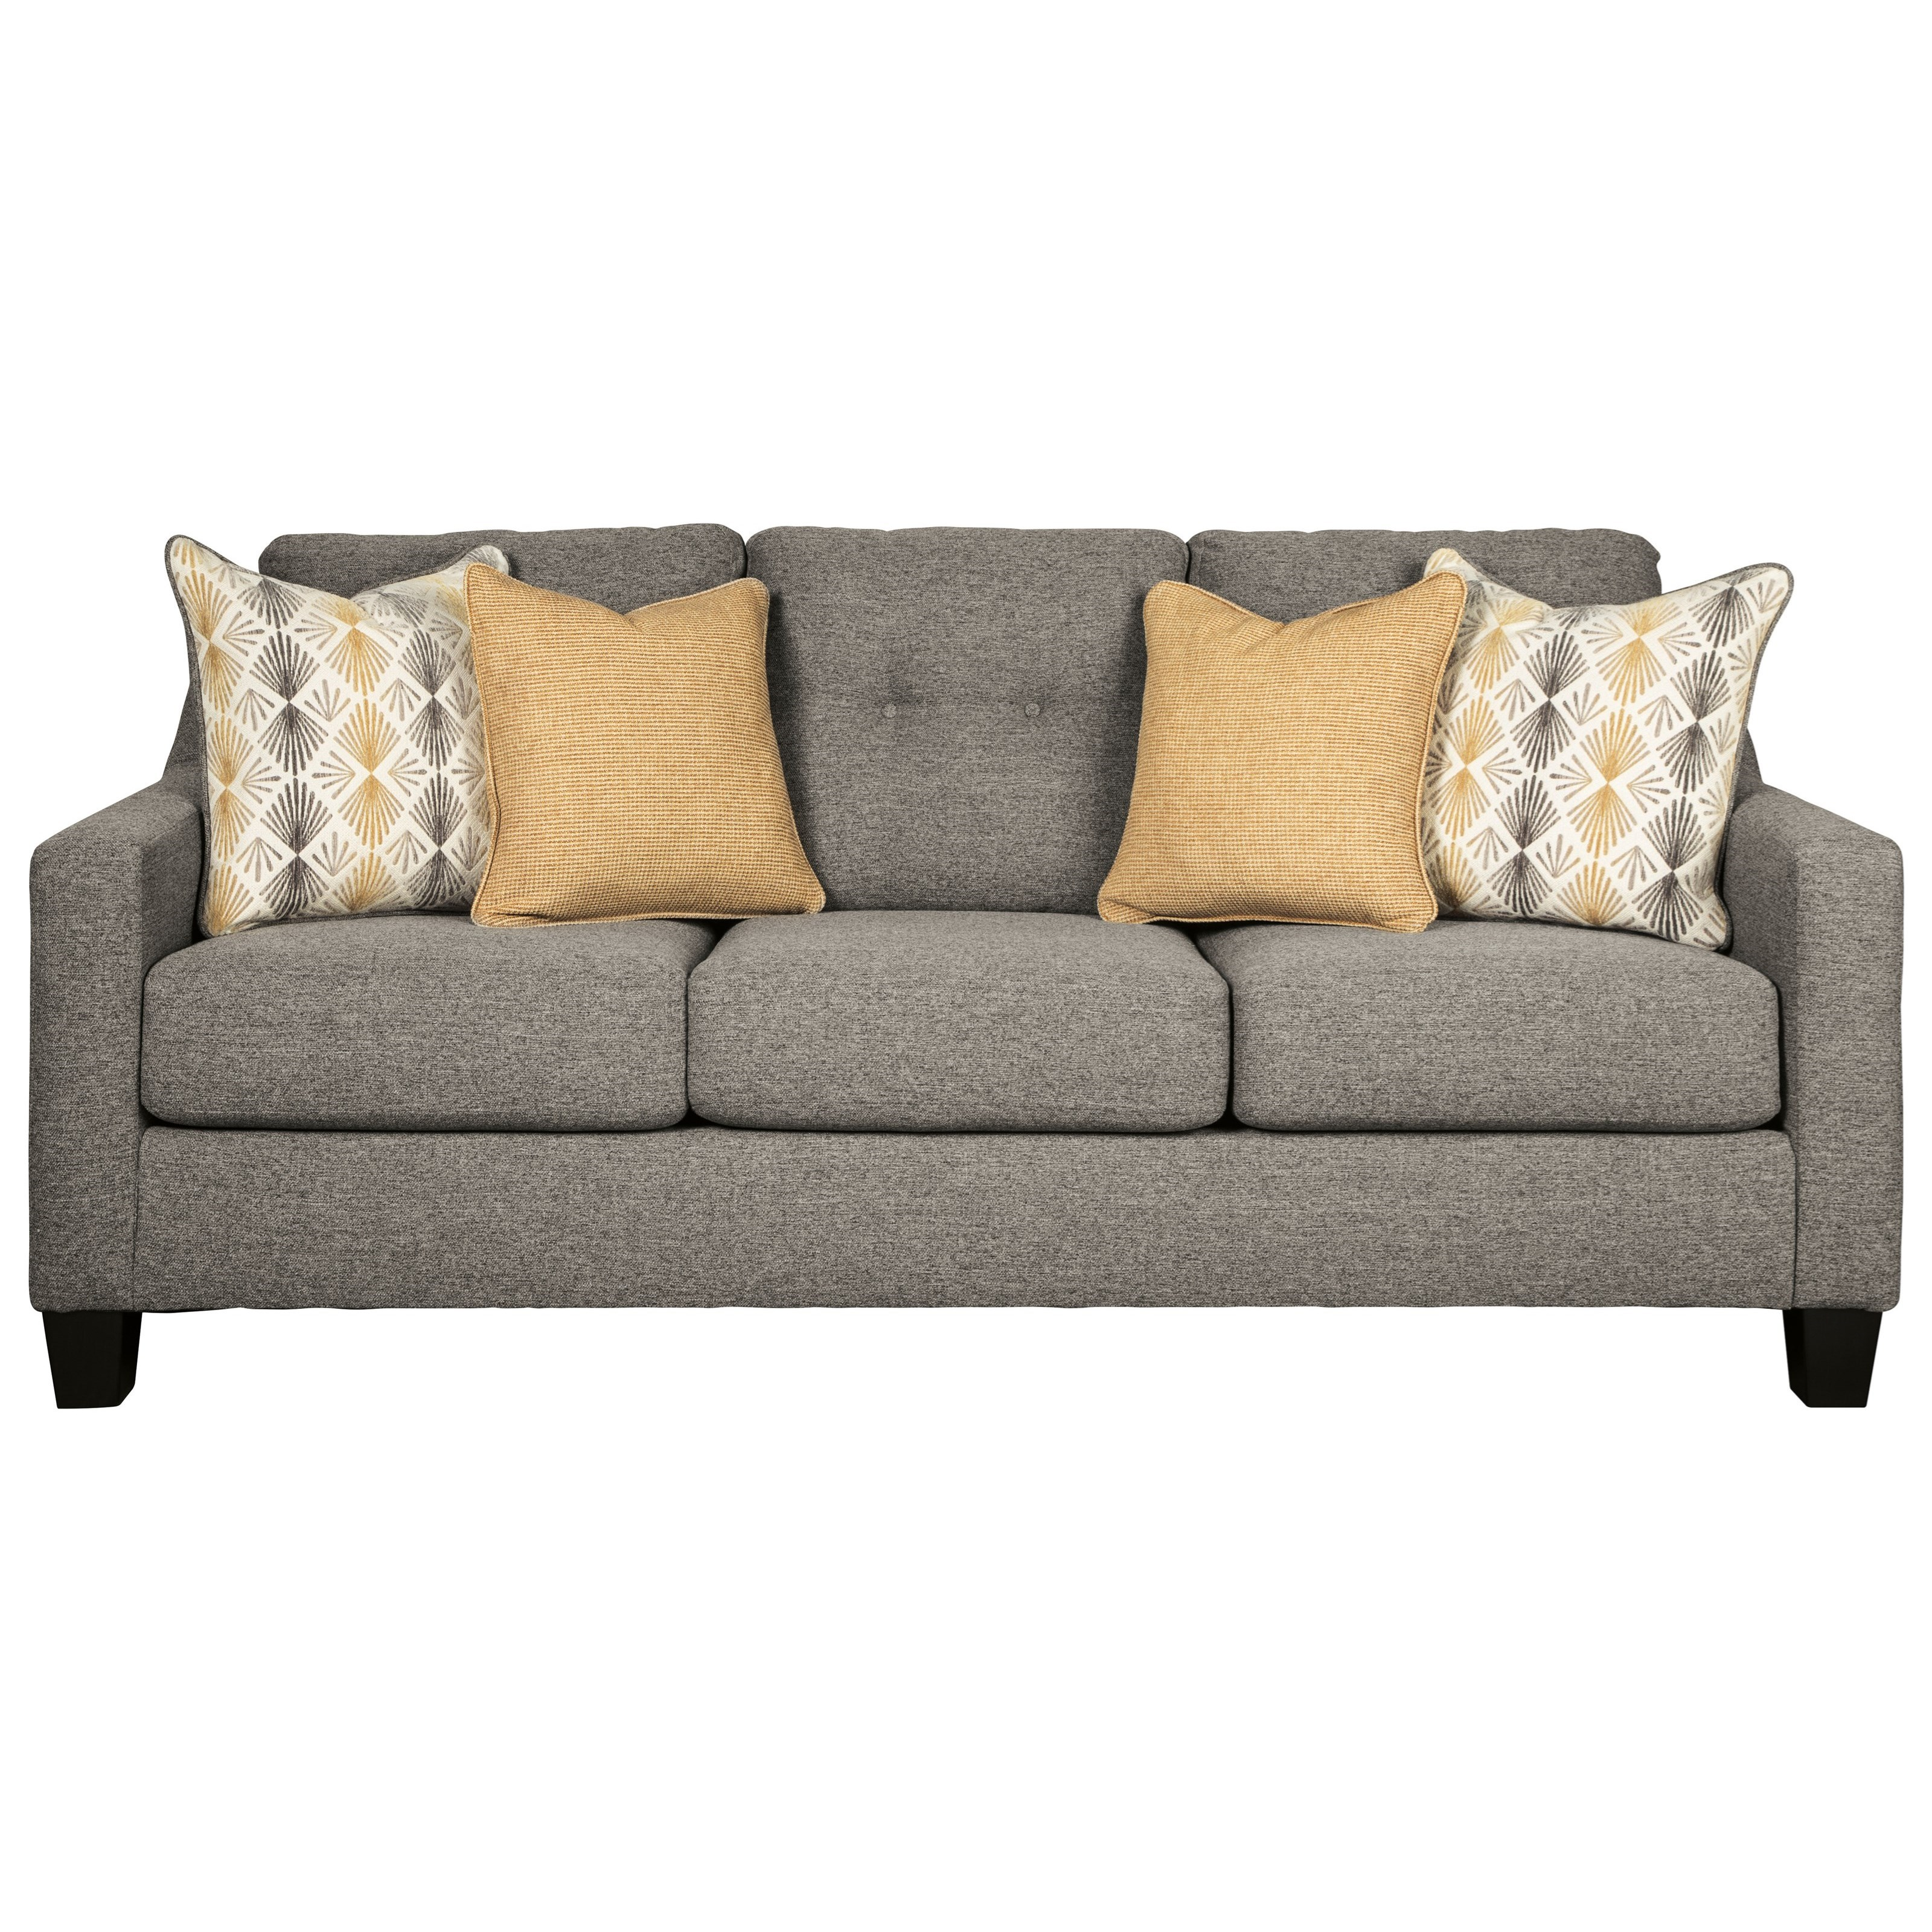 Daylon Sofa by Benchcraft at Fisher Home Furnishings